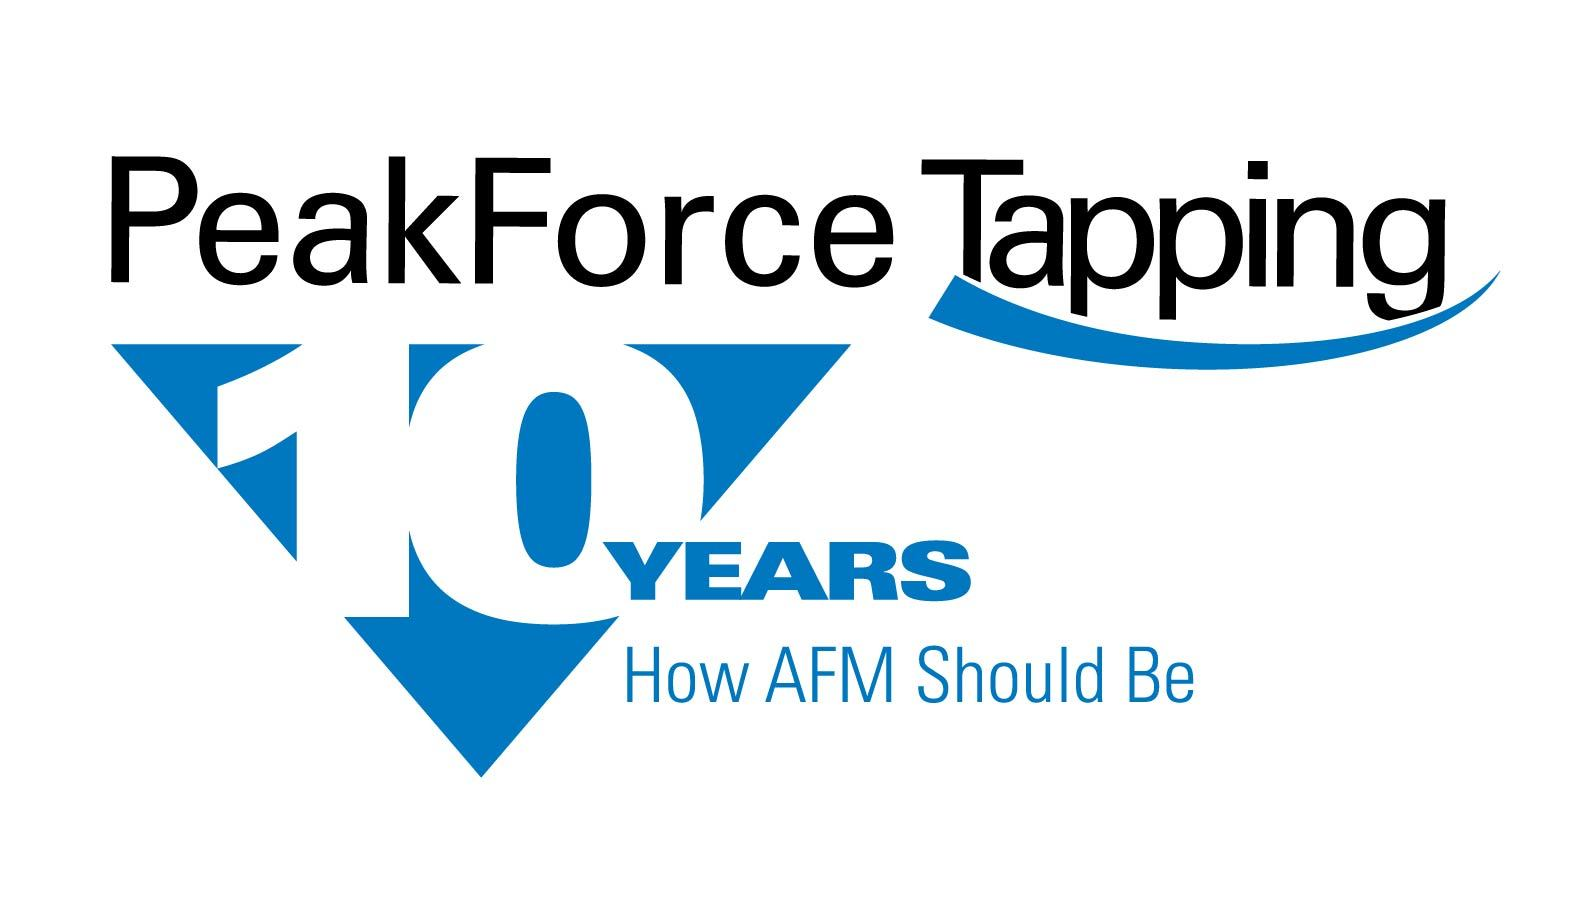 Peak Force Tapping 10 Year Logo 2019 091V5 Color Slogan